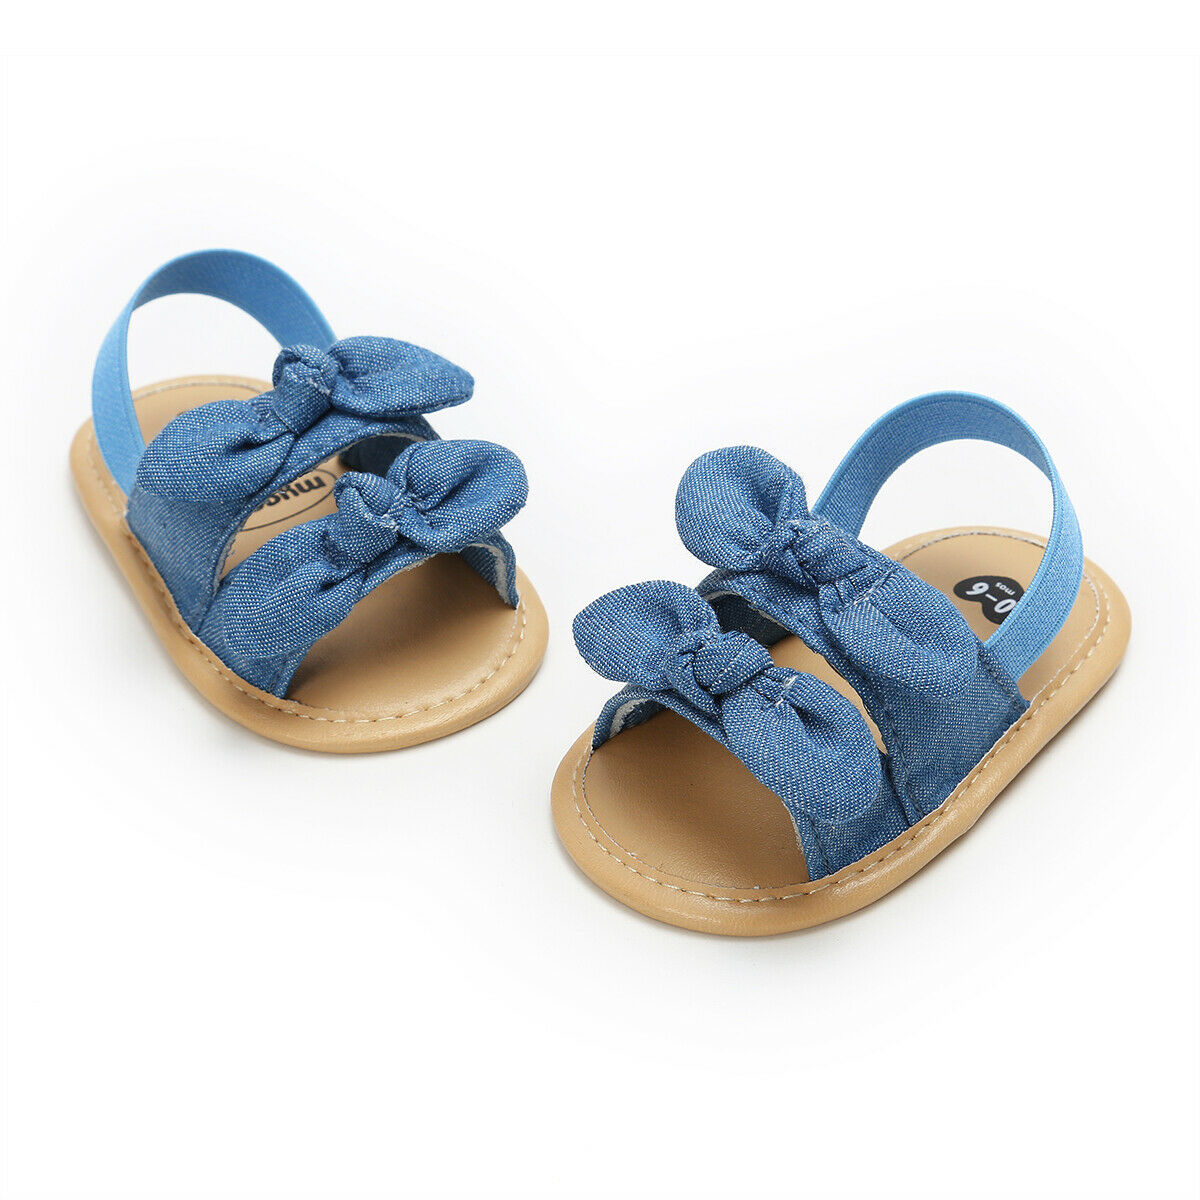 Pudcoco 2019 New Brand Kid Toddler Baby Girl Sandals Party Princess Sandles Summer Beach Shoes